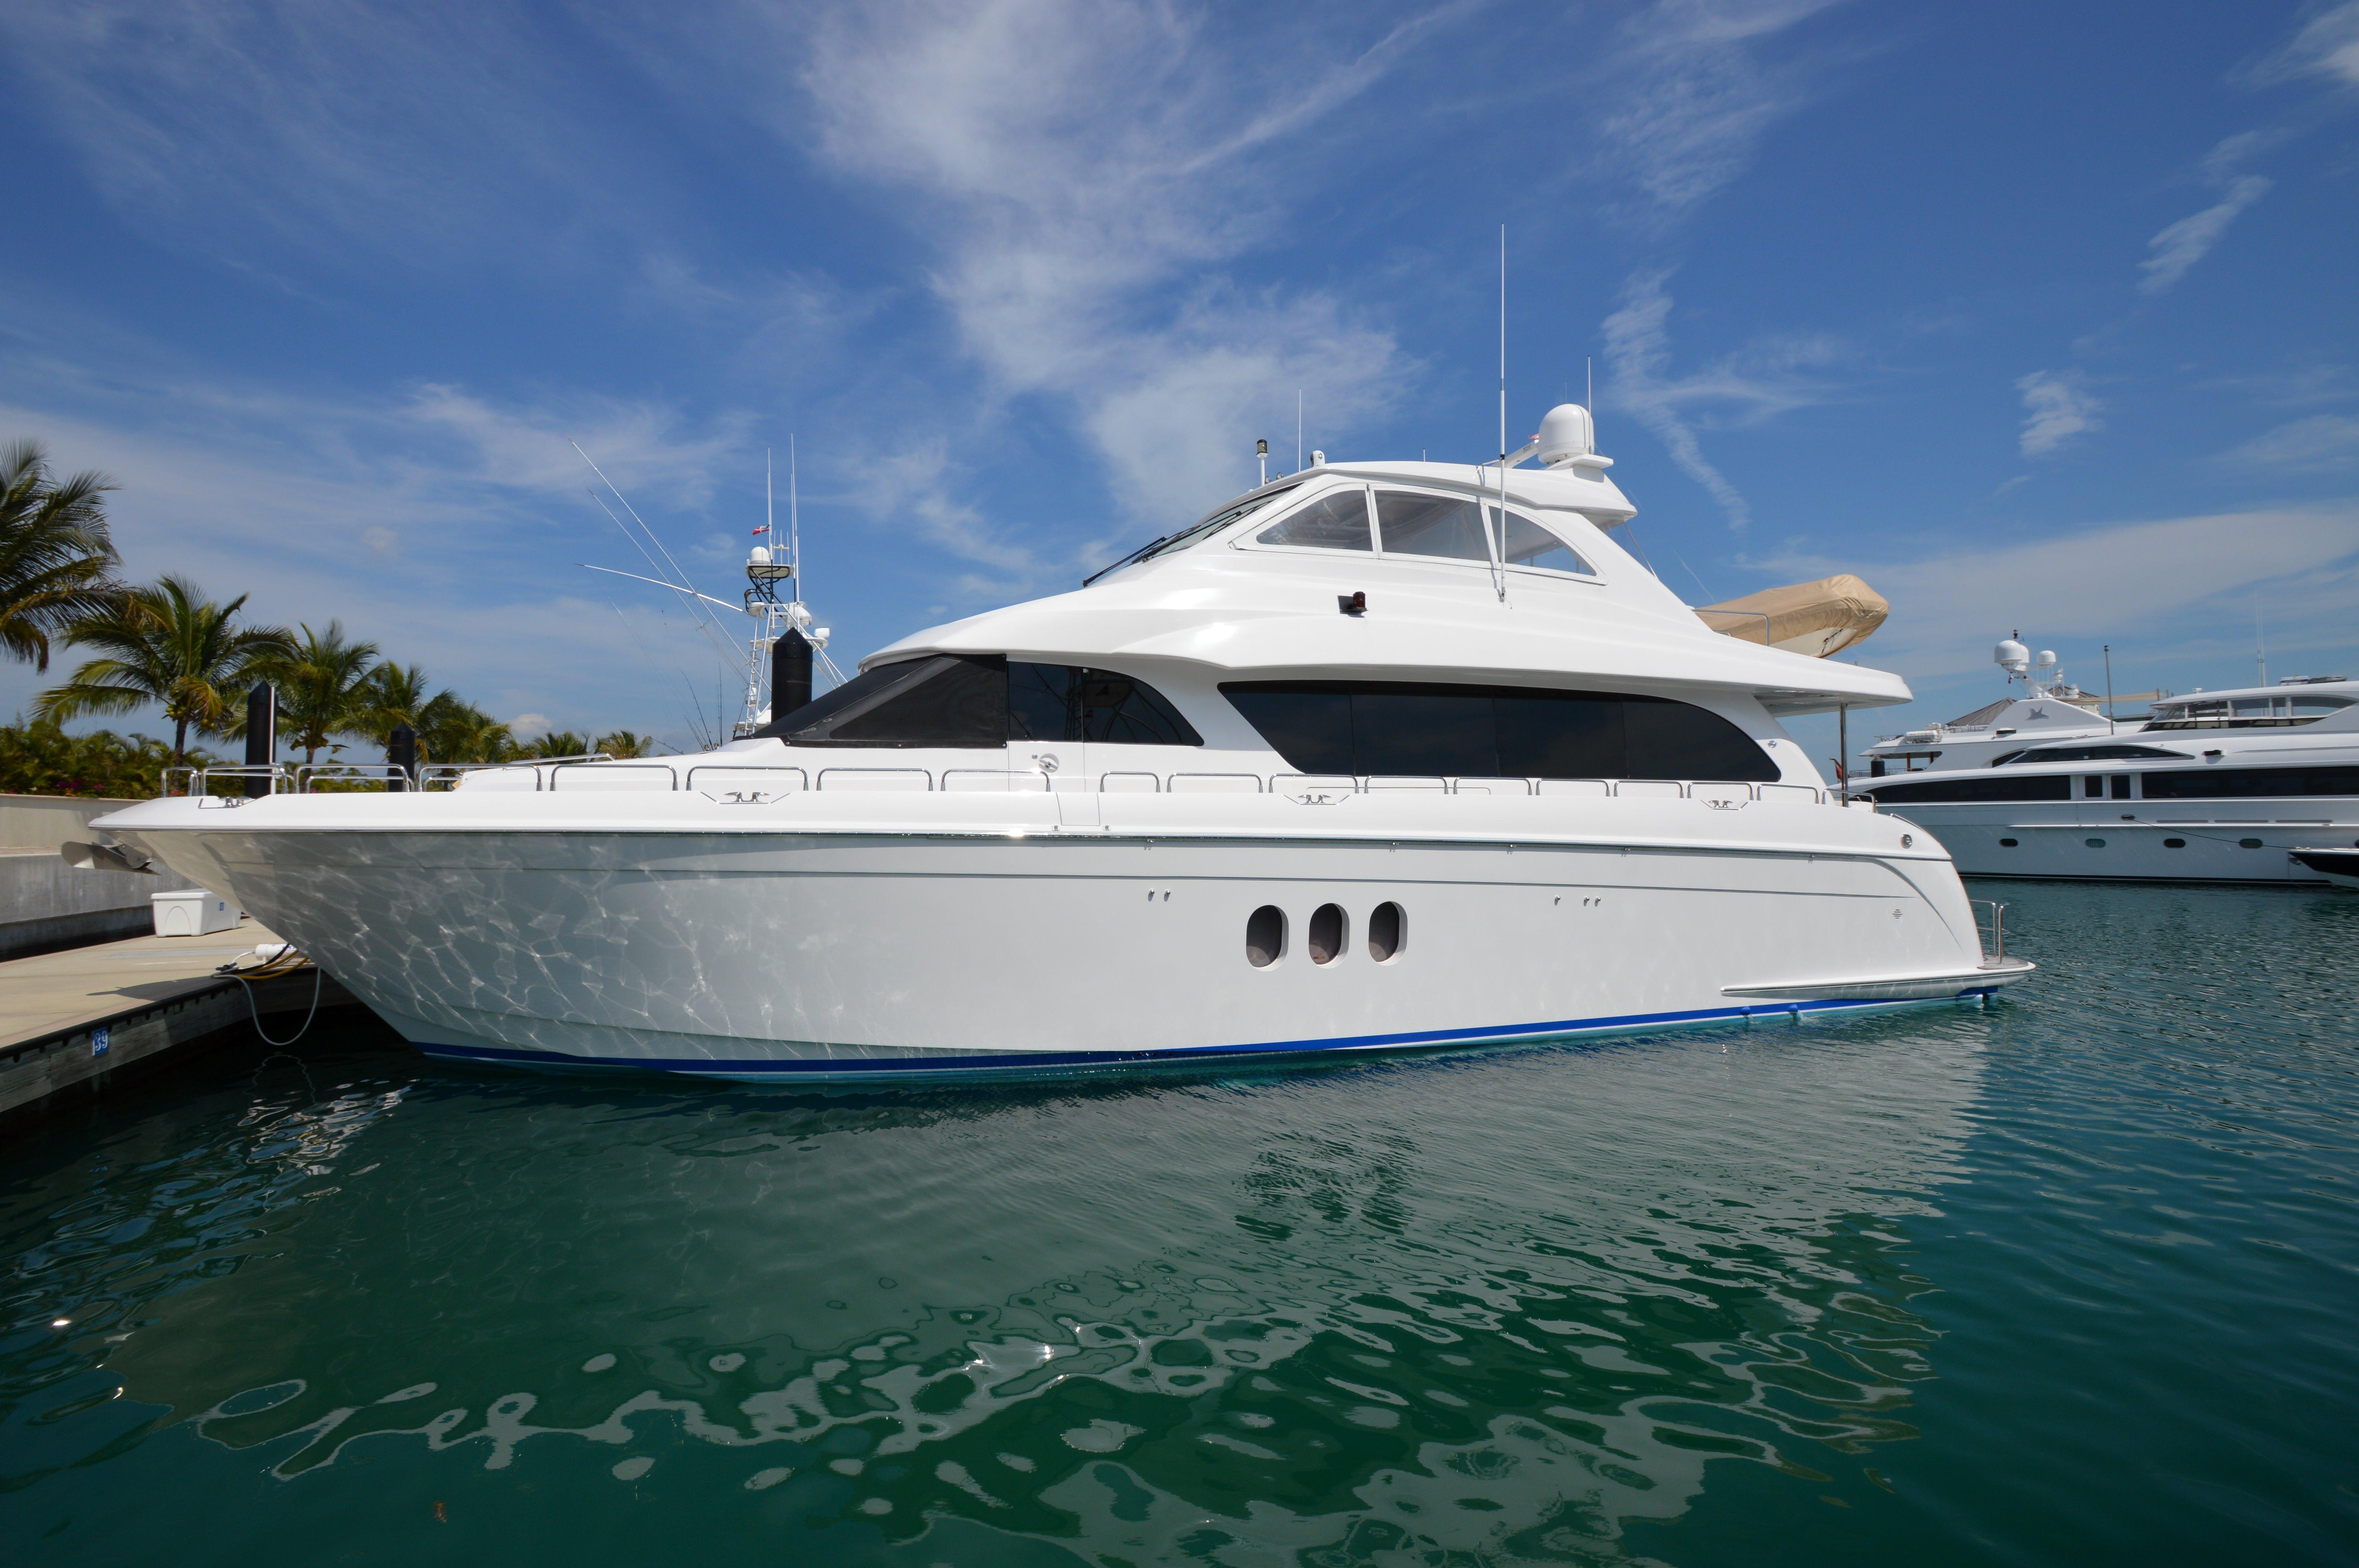 72 foot boats for sale in nc boat listings for 72 hatteras motor yacht for sale